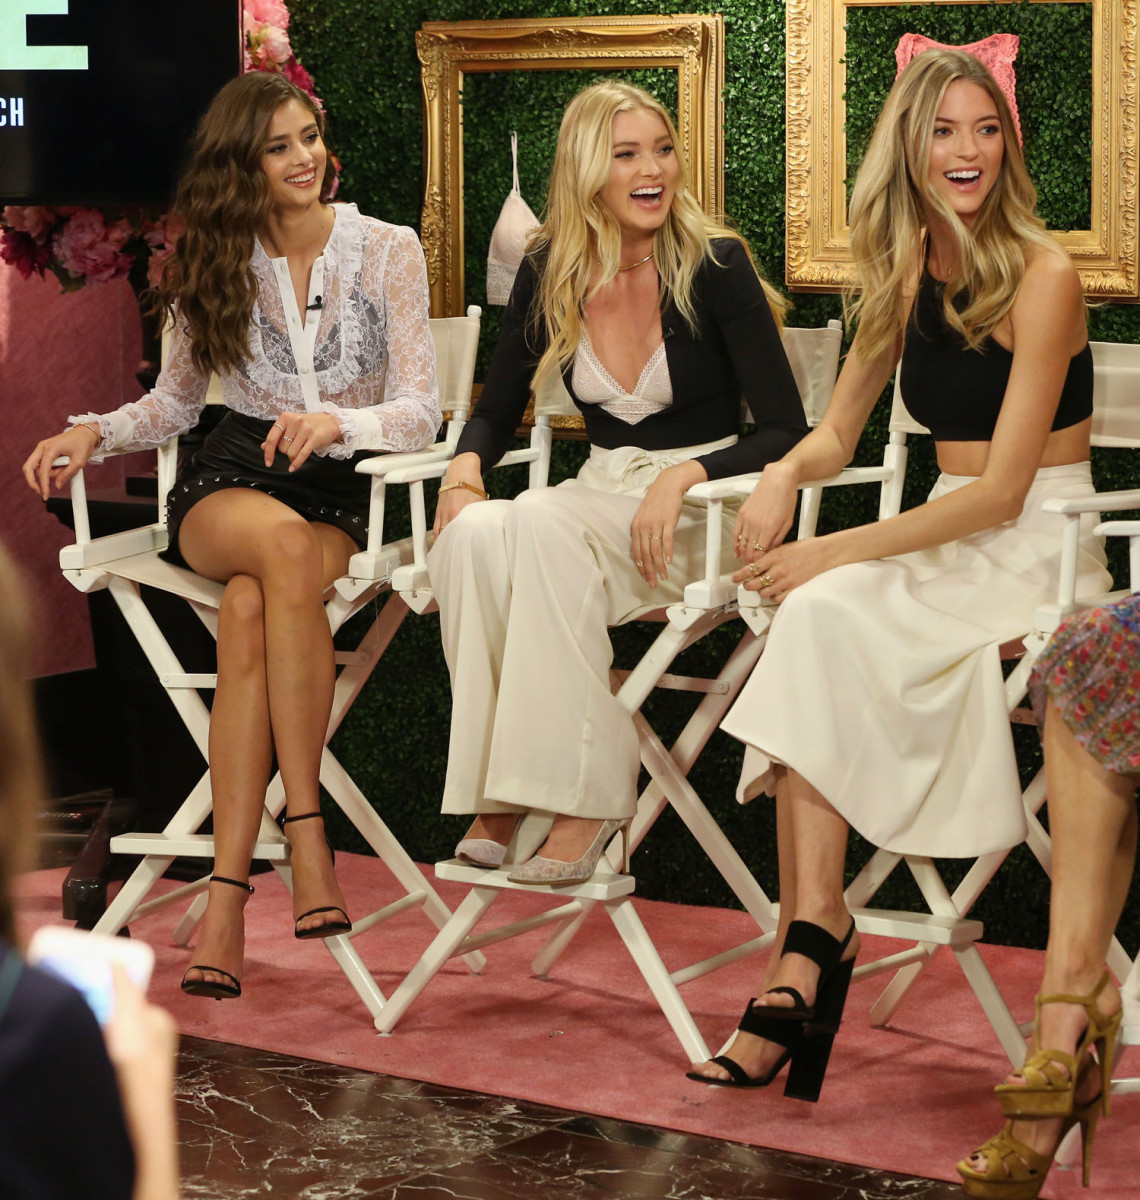 """NEW YORK, NEW YORK - APRIL 12:  (L-R) Victoria's Secret Angels Taylor Hill, Elsa Hosk and Martha Hunt host global media live stream to reveal Bralette Collection & launch multi-city tour at Victoria's Secret Herald Square on April 12, 2016 in New York City  (Photo by Cindy Ord/Getty Images for Victoria's Secret)"""